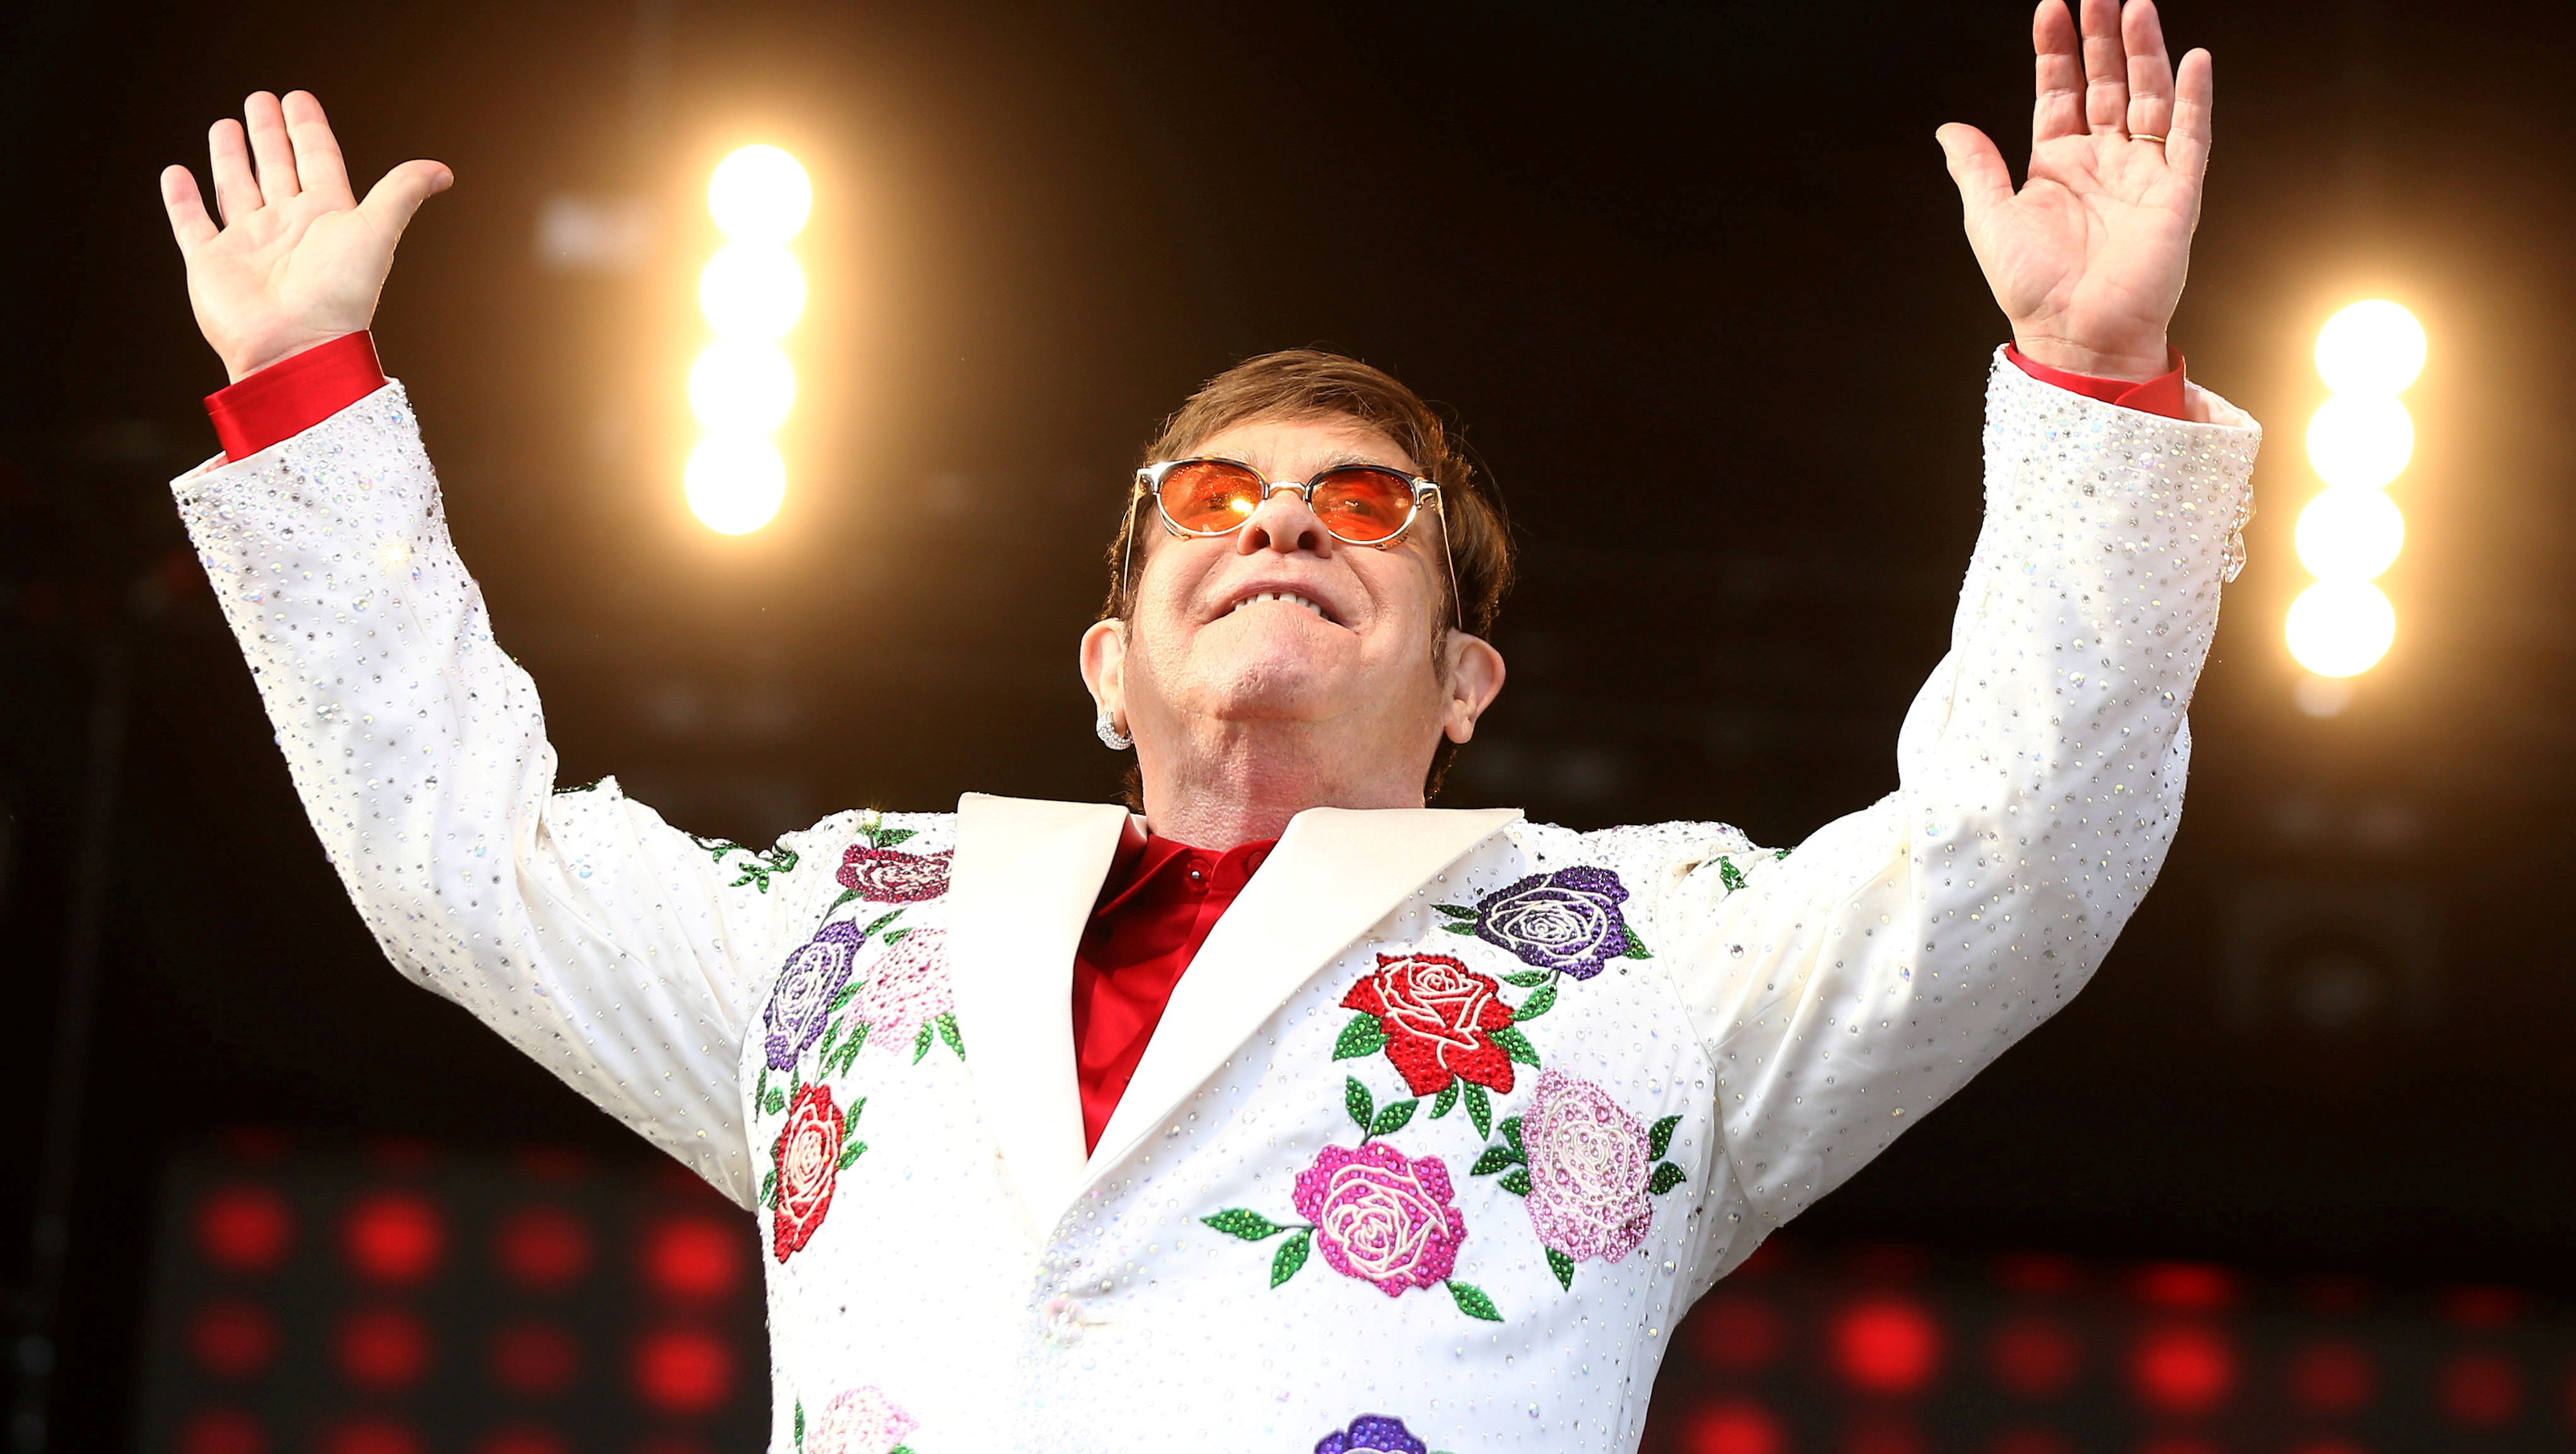 FILE PHOTO: Musician Elton John performs at a concert in Twickenham in London, Britain June 3, 2017. REUTERS/Neil Hall/File Photo - RC14FFB763D0